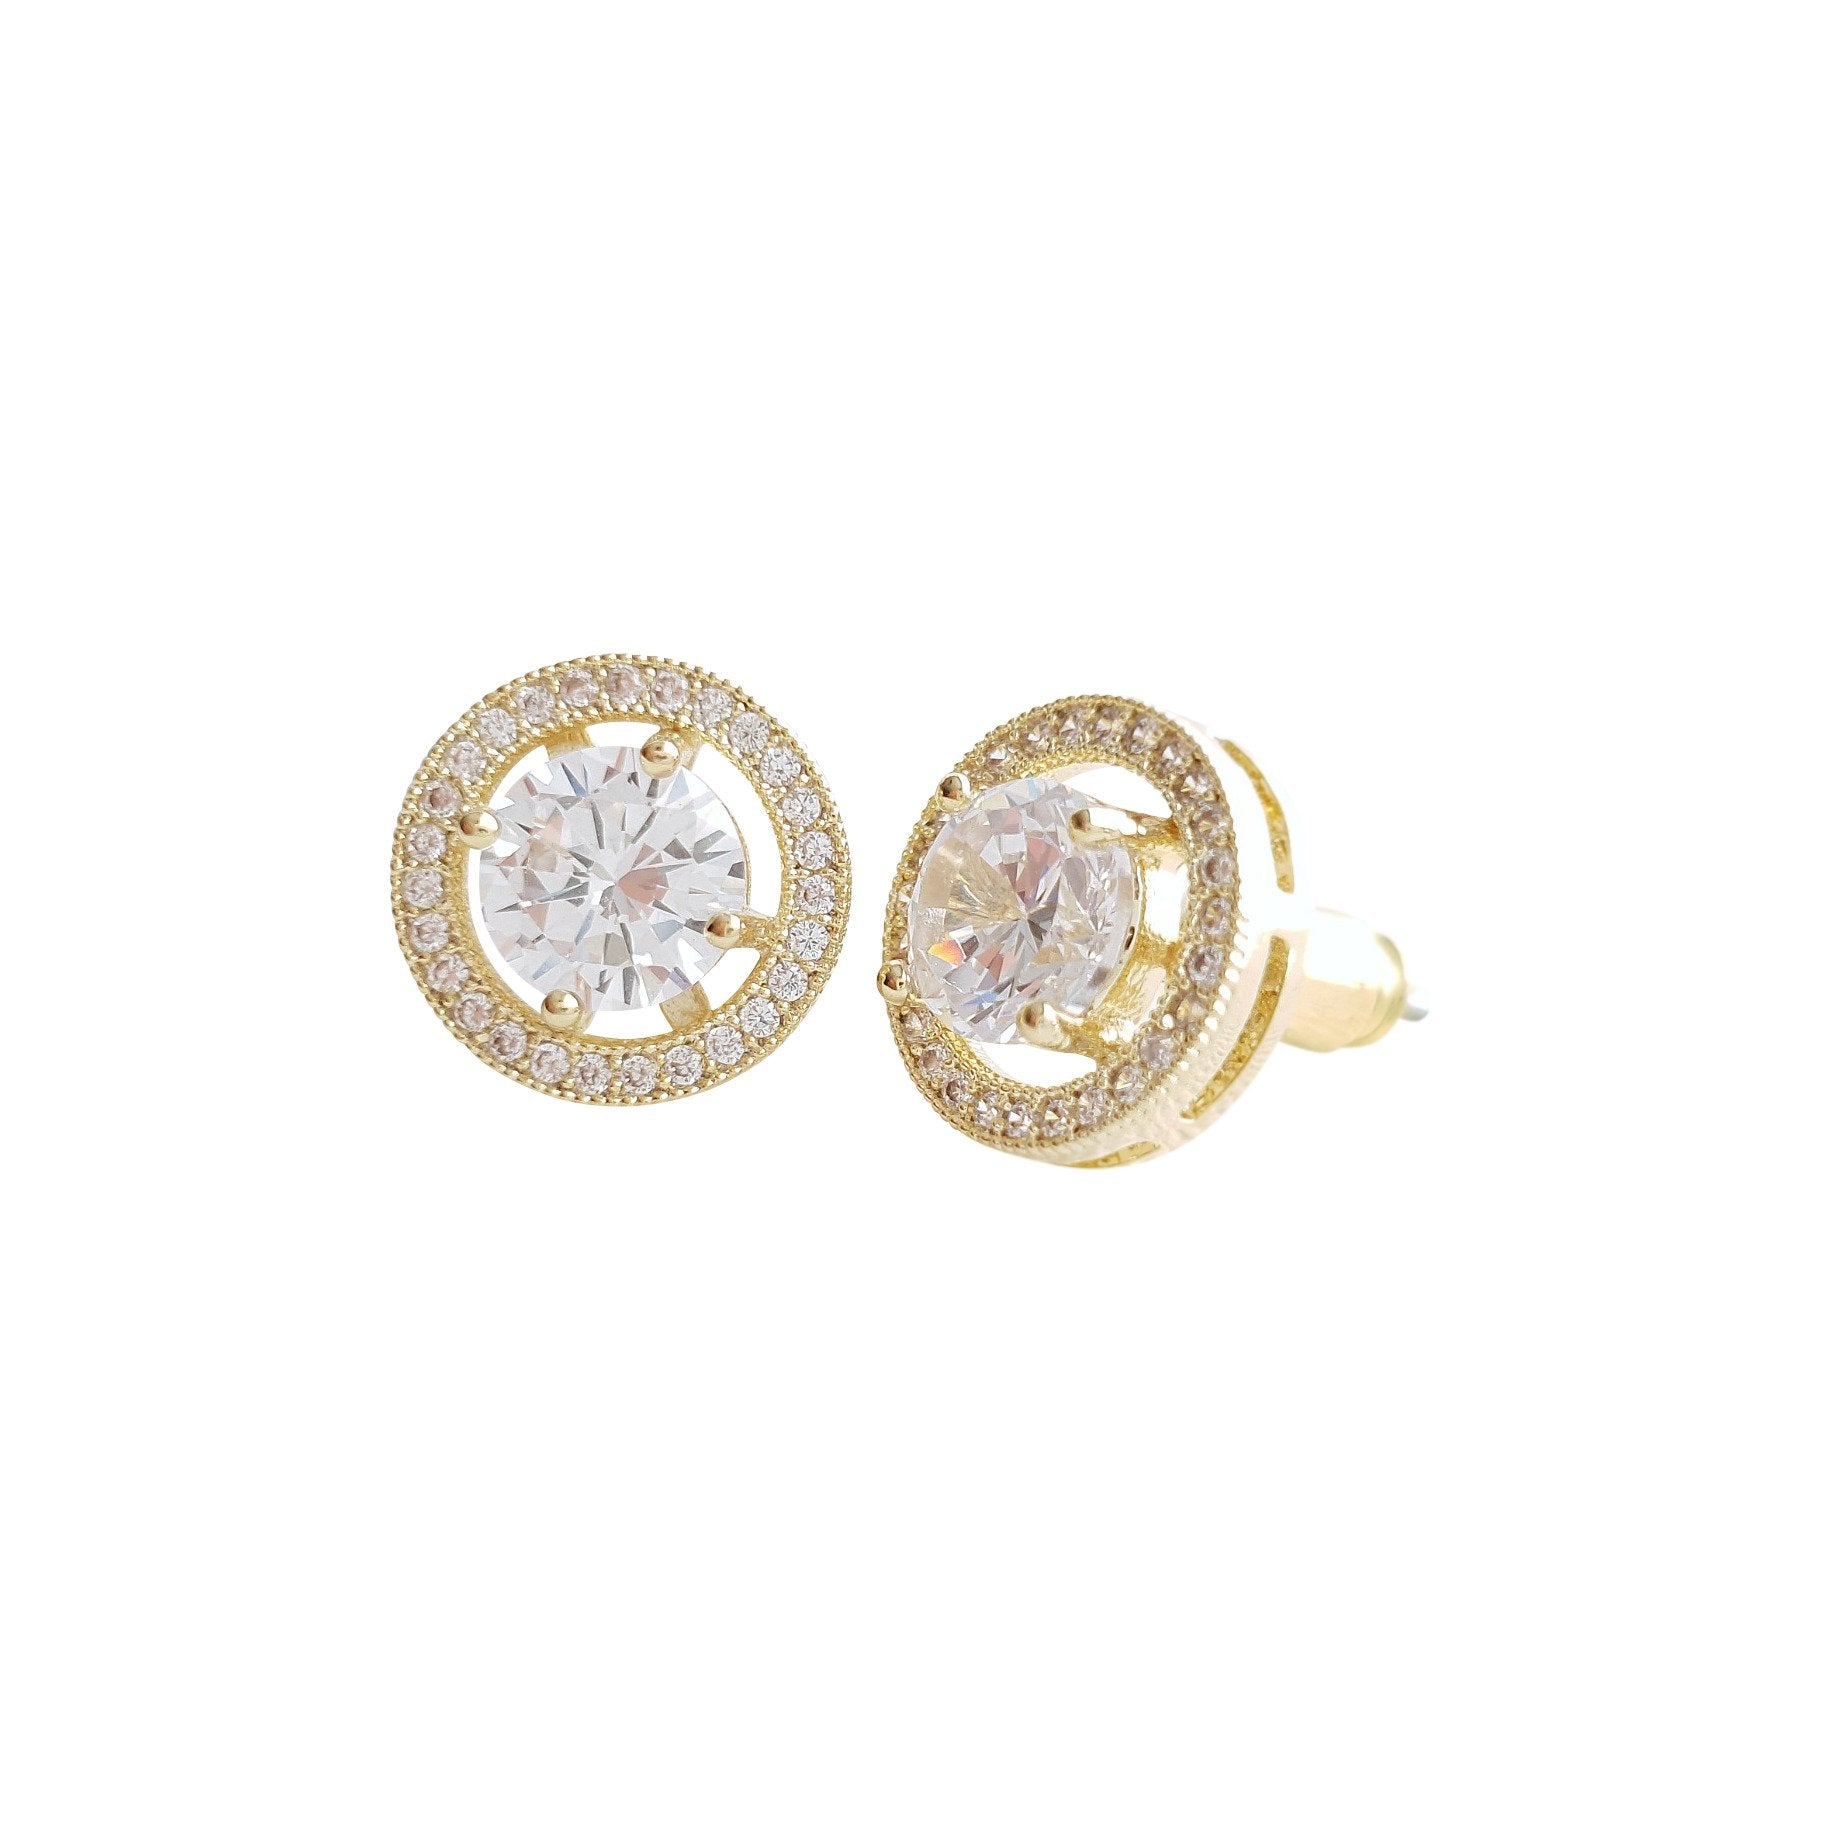 Gold Round Stud Earrings in Cubic Zirconia- Denise - PoetryDesigns